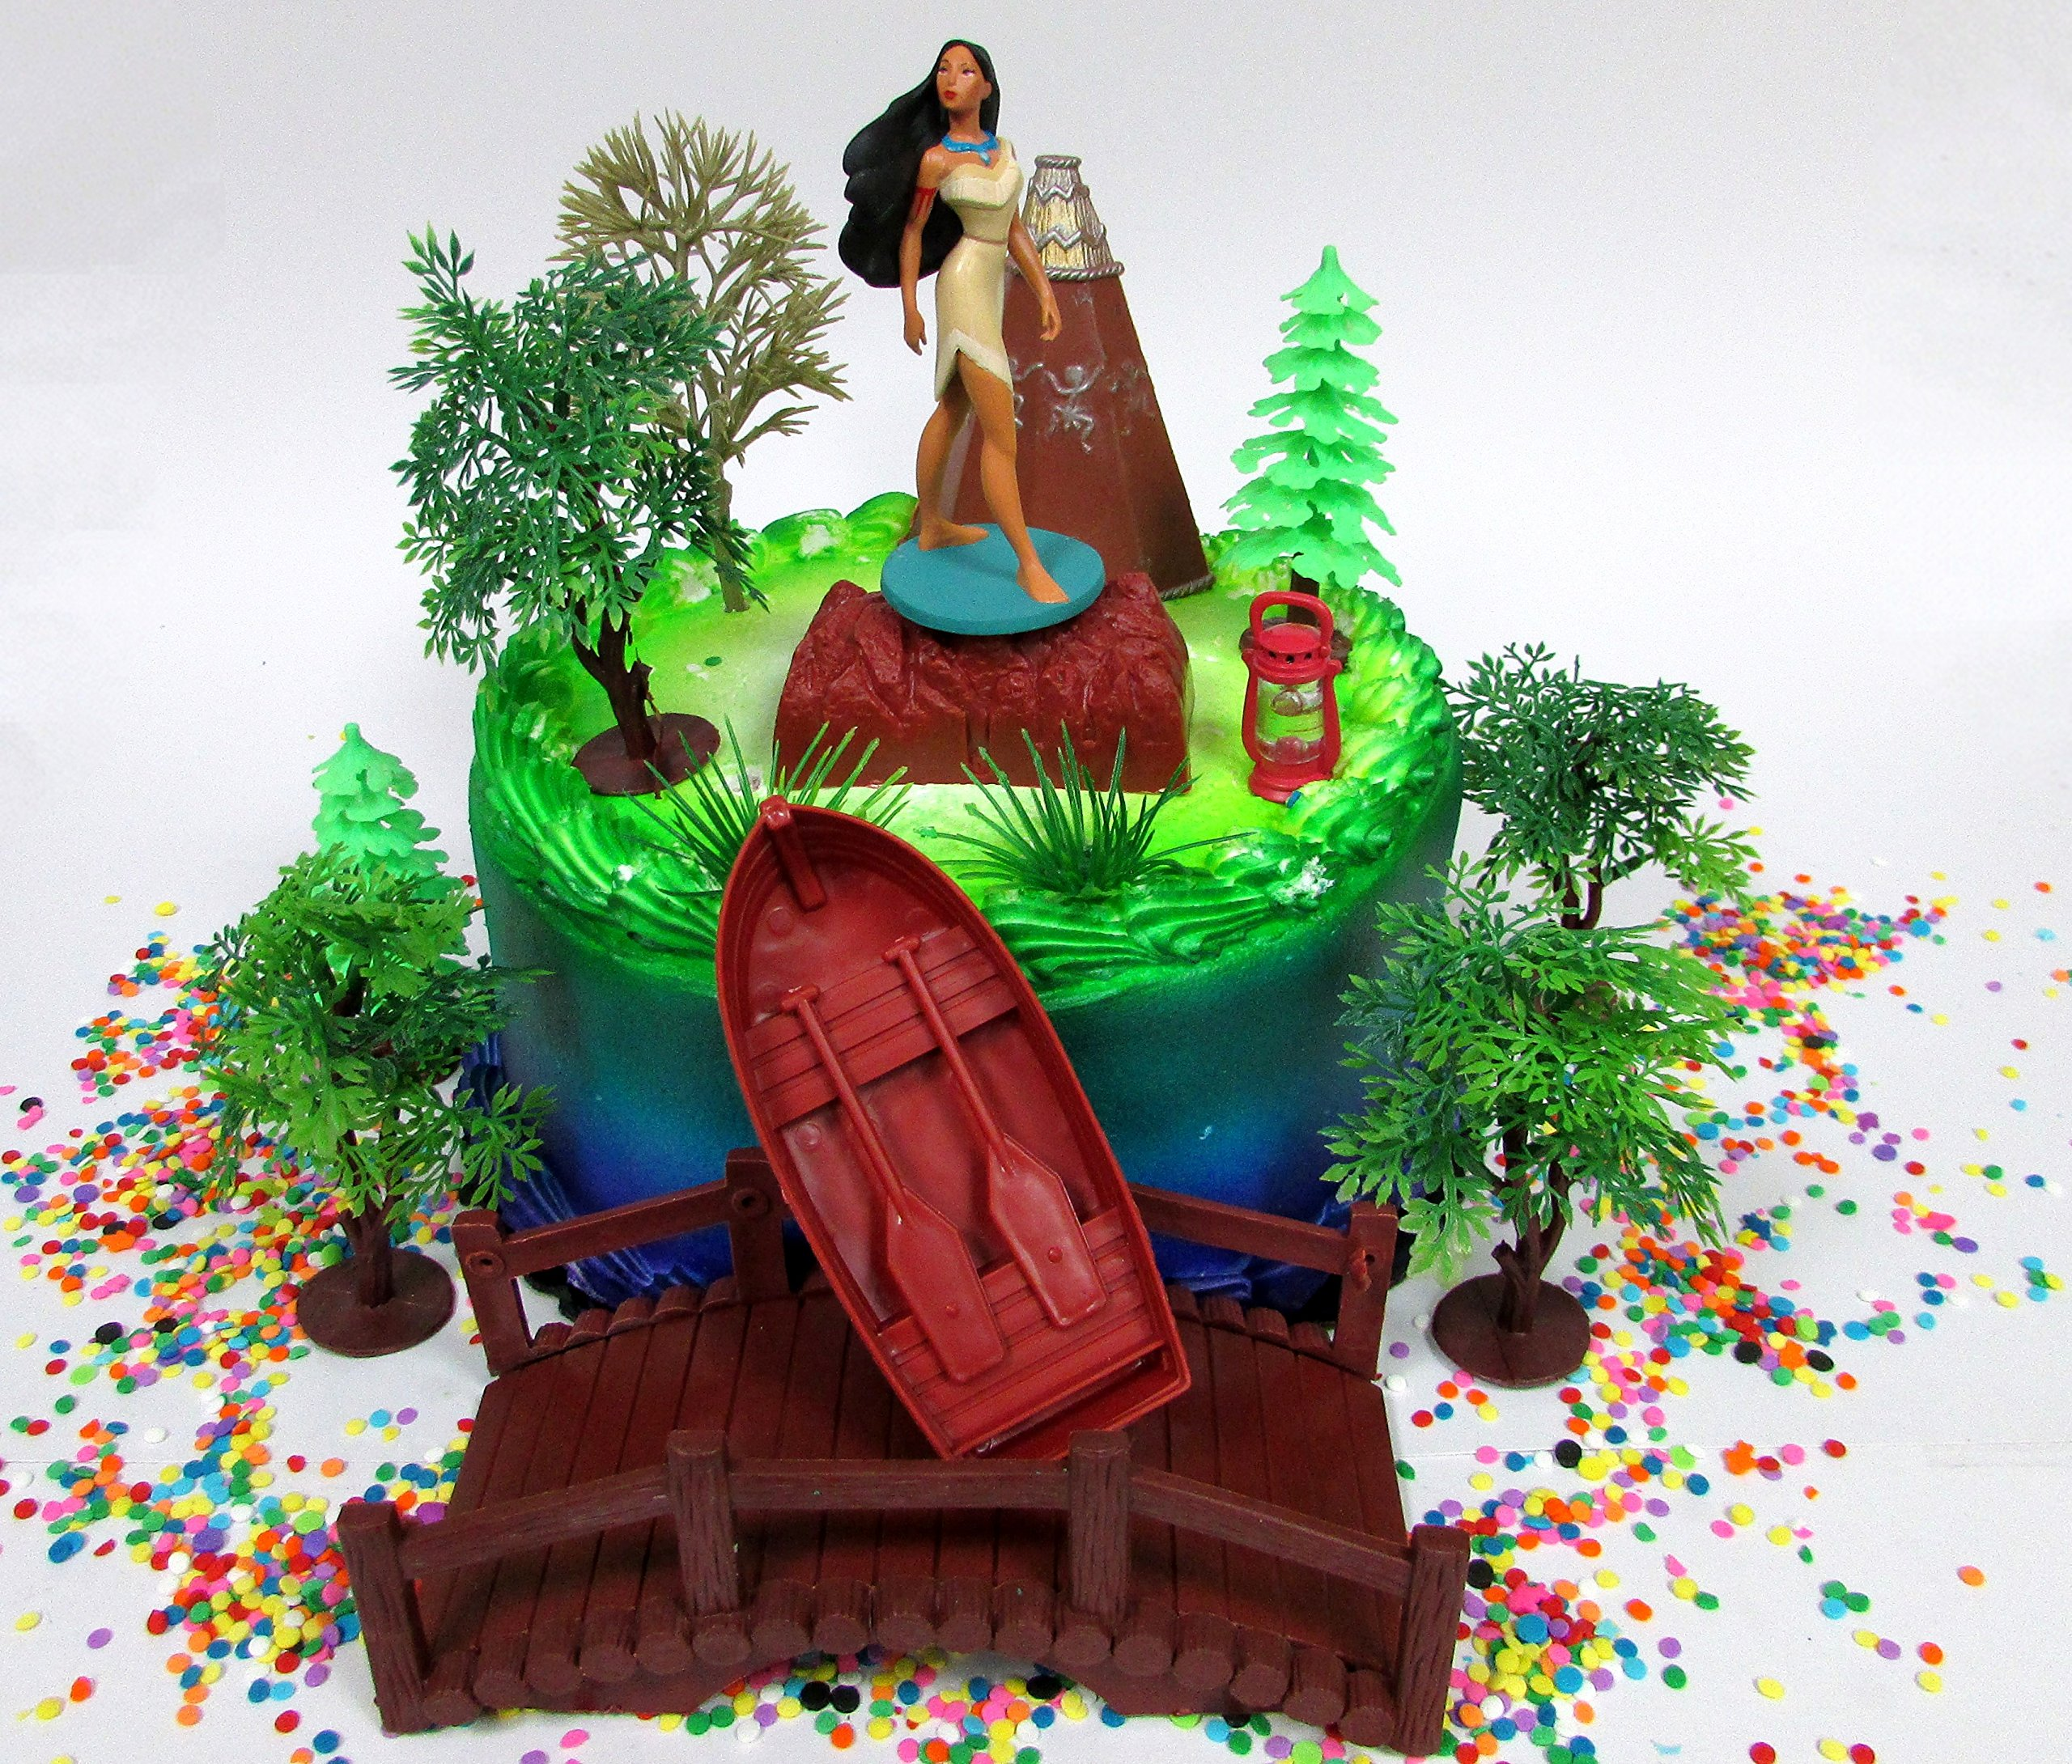 Pocahontas Themed PRINCESS POCAHONTAS Birthday Cake Topper Set Featuring Pocahontas Figure and Decorative Accessories by Cake Toppers (Image #1)